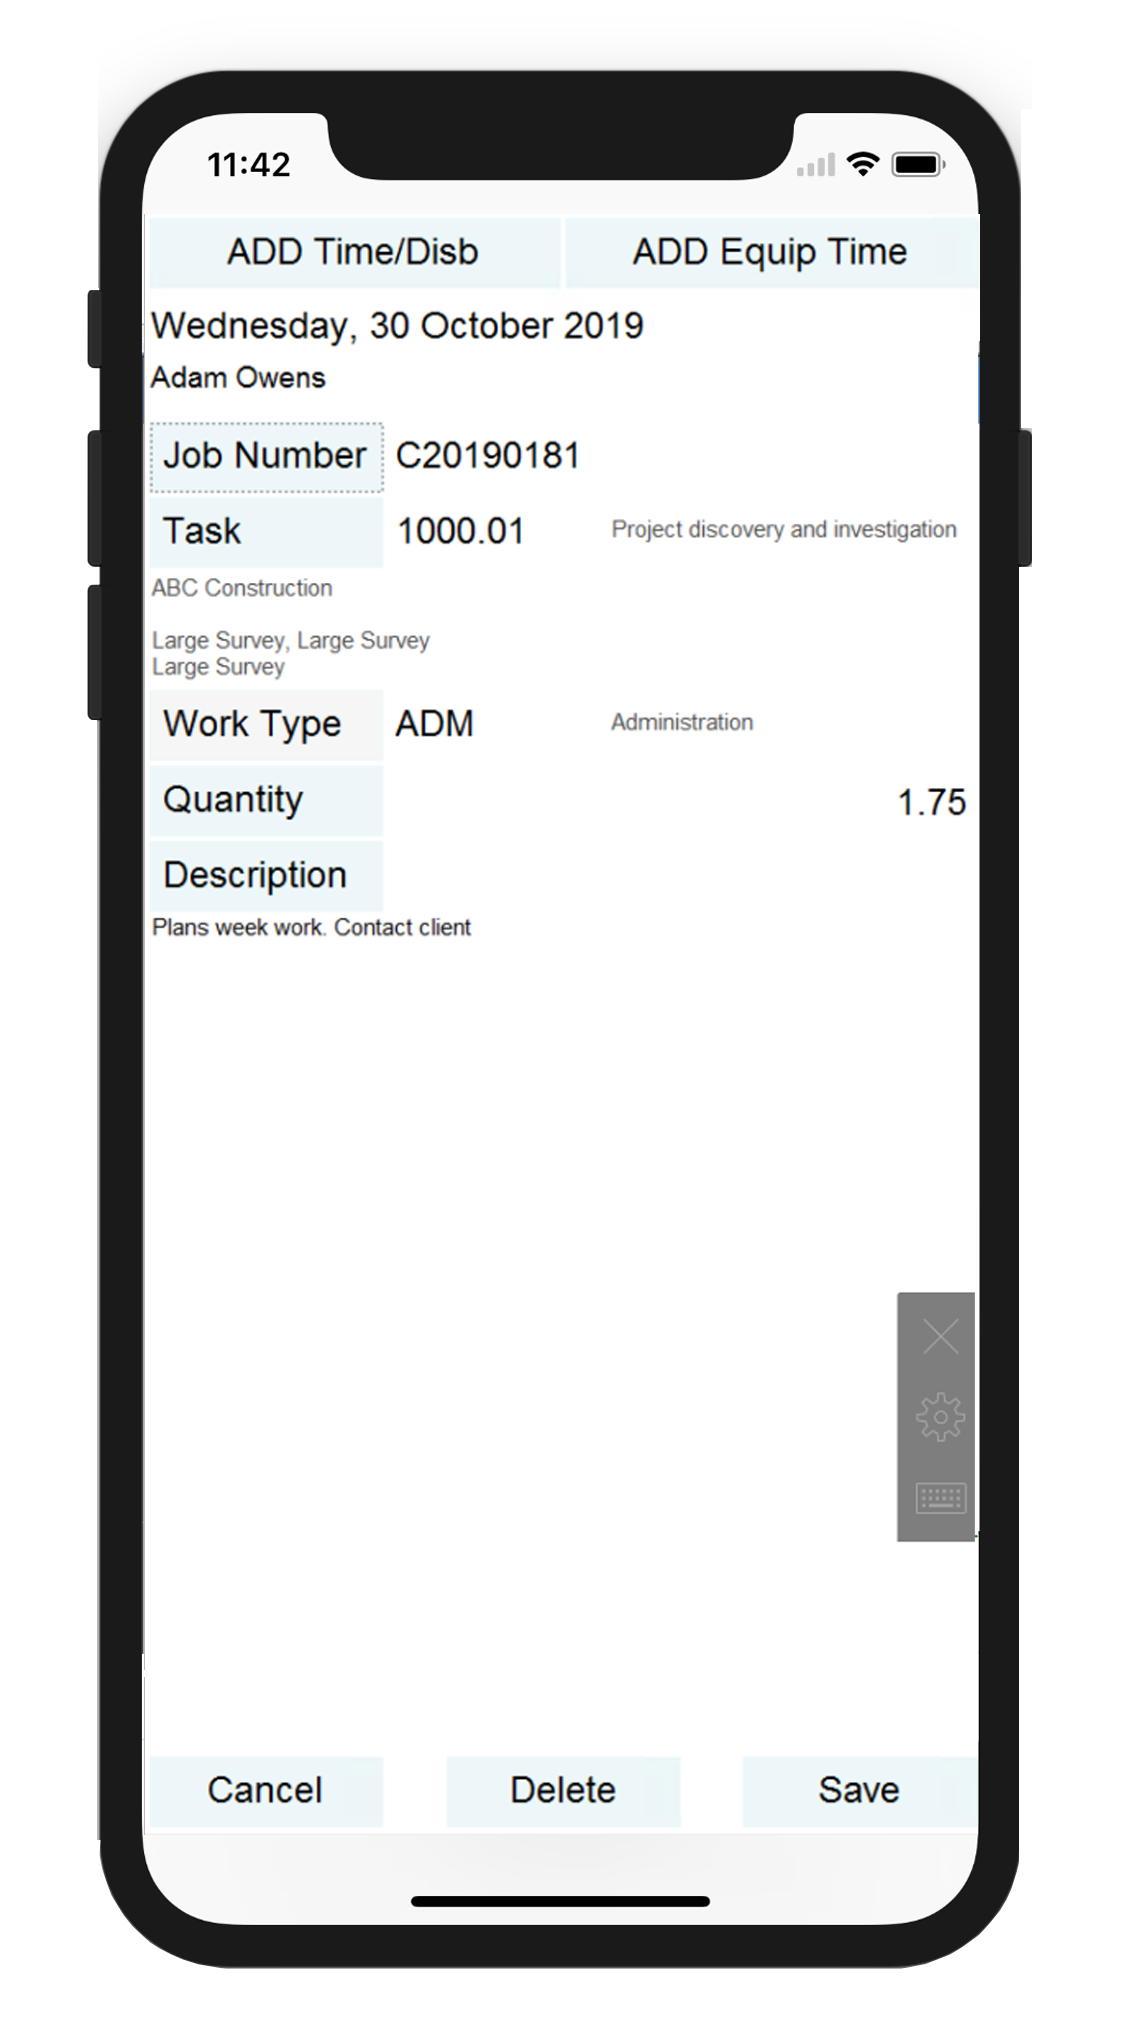 Mobile timesheet software to enter time and disbursements on Android & iOS and tablets. Time and disbursements are immediately available for review by managers, inclusion in WIP reports, export to payroll and billing by accounts.